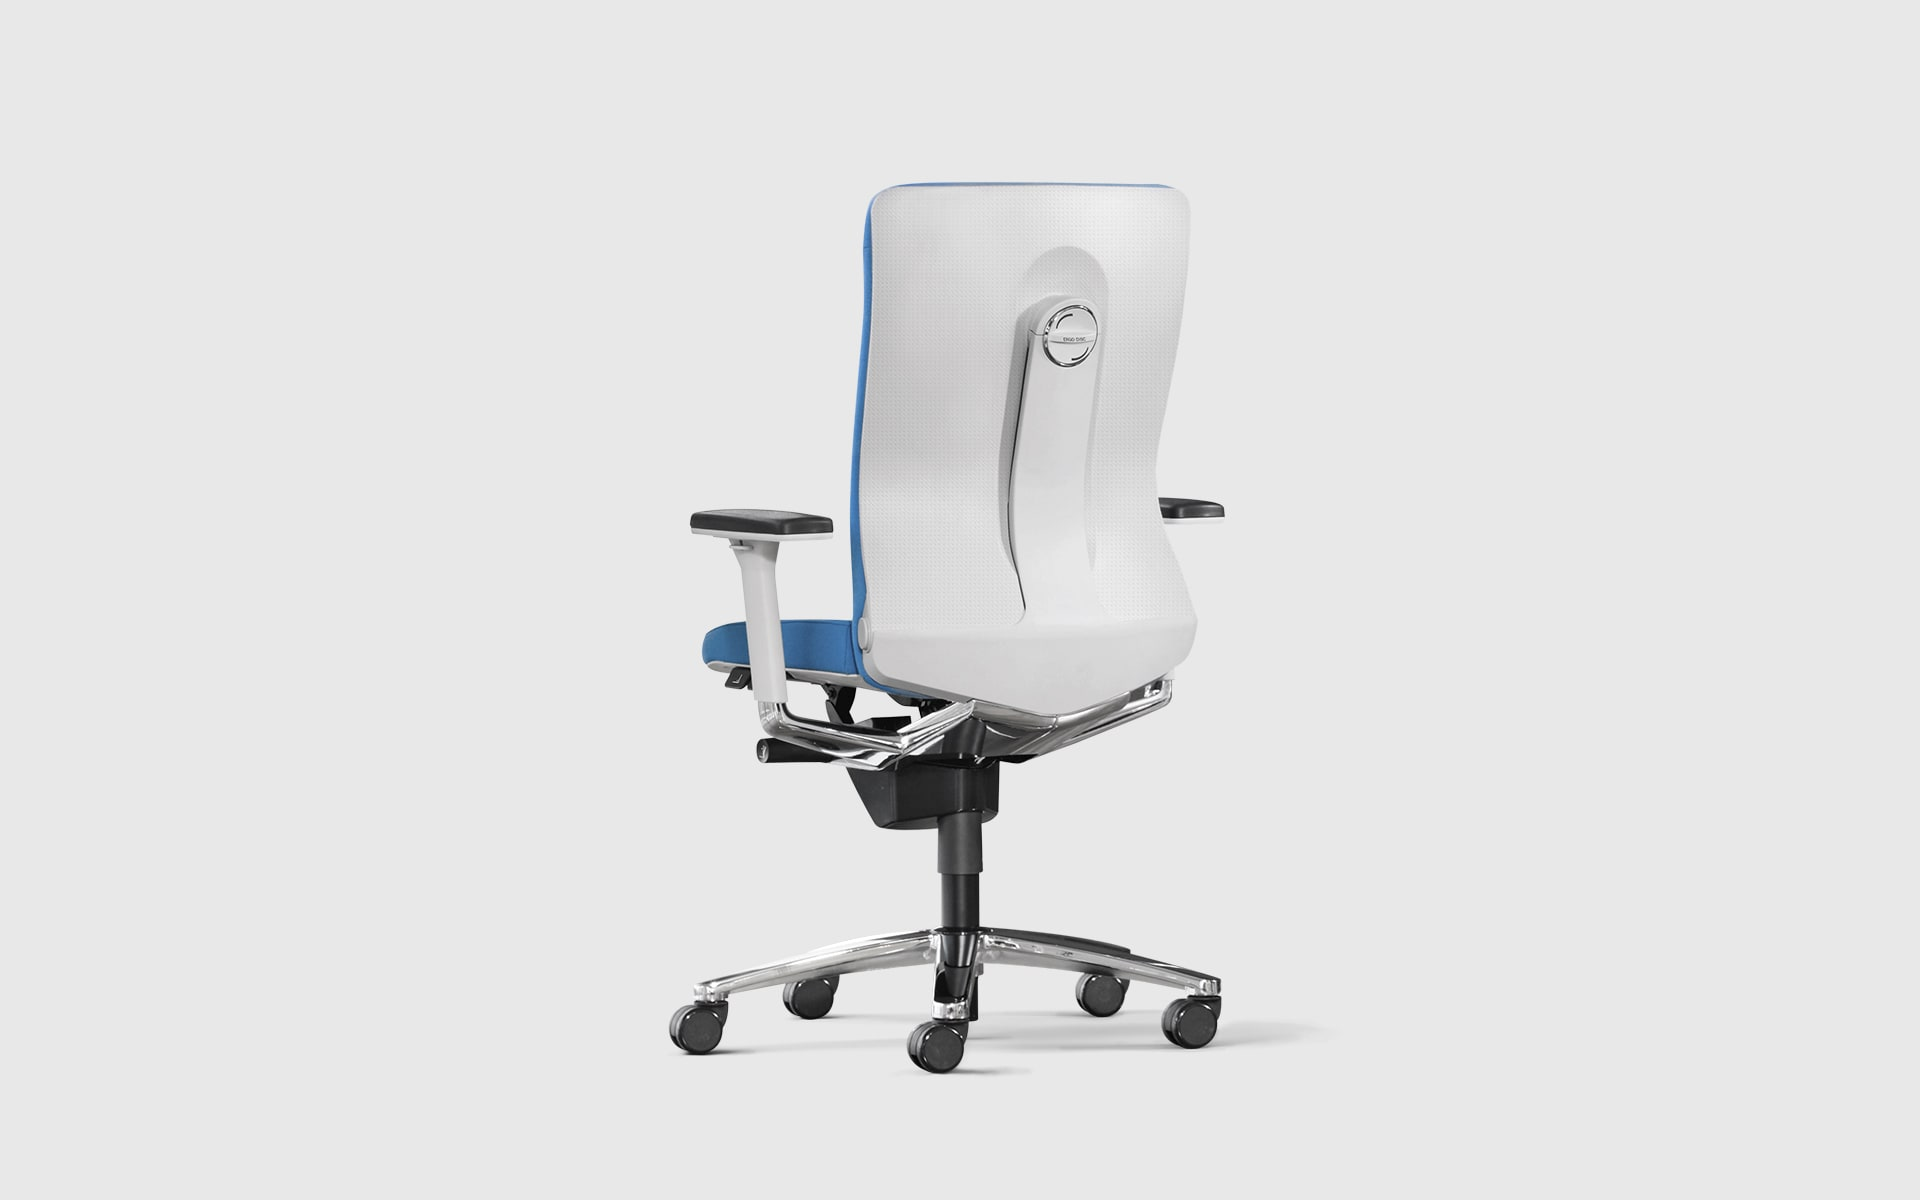 König + Neurath Lamiga office chair by ITO Design with ergonomic white backrest and blue upholstery